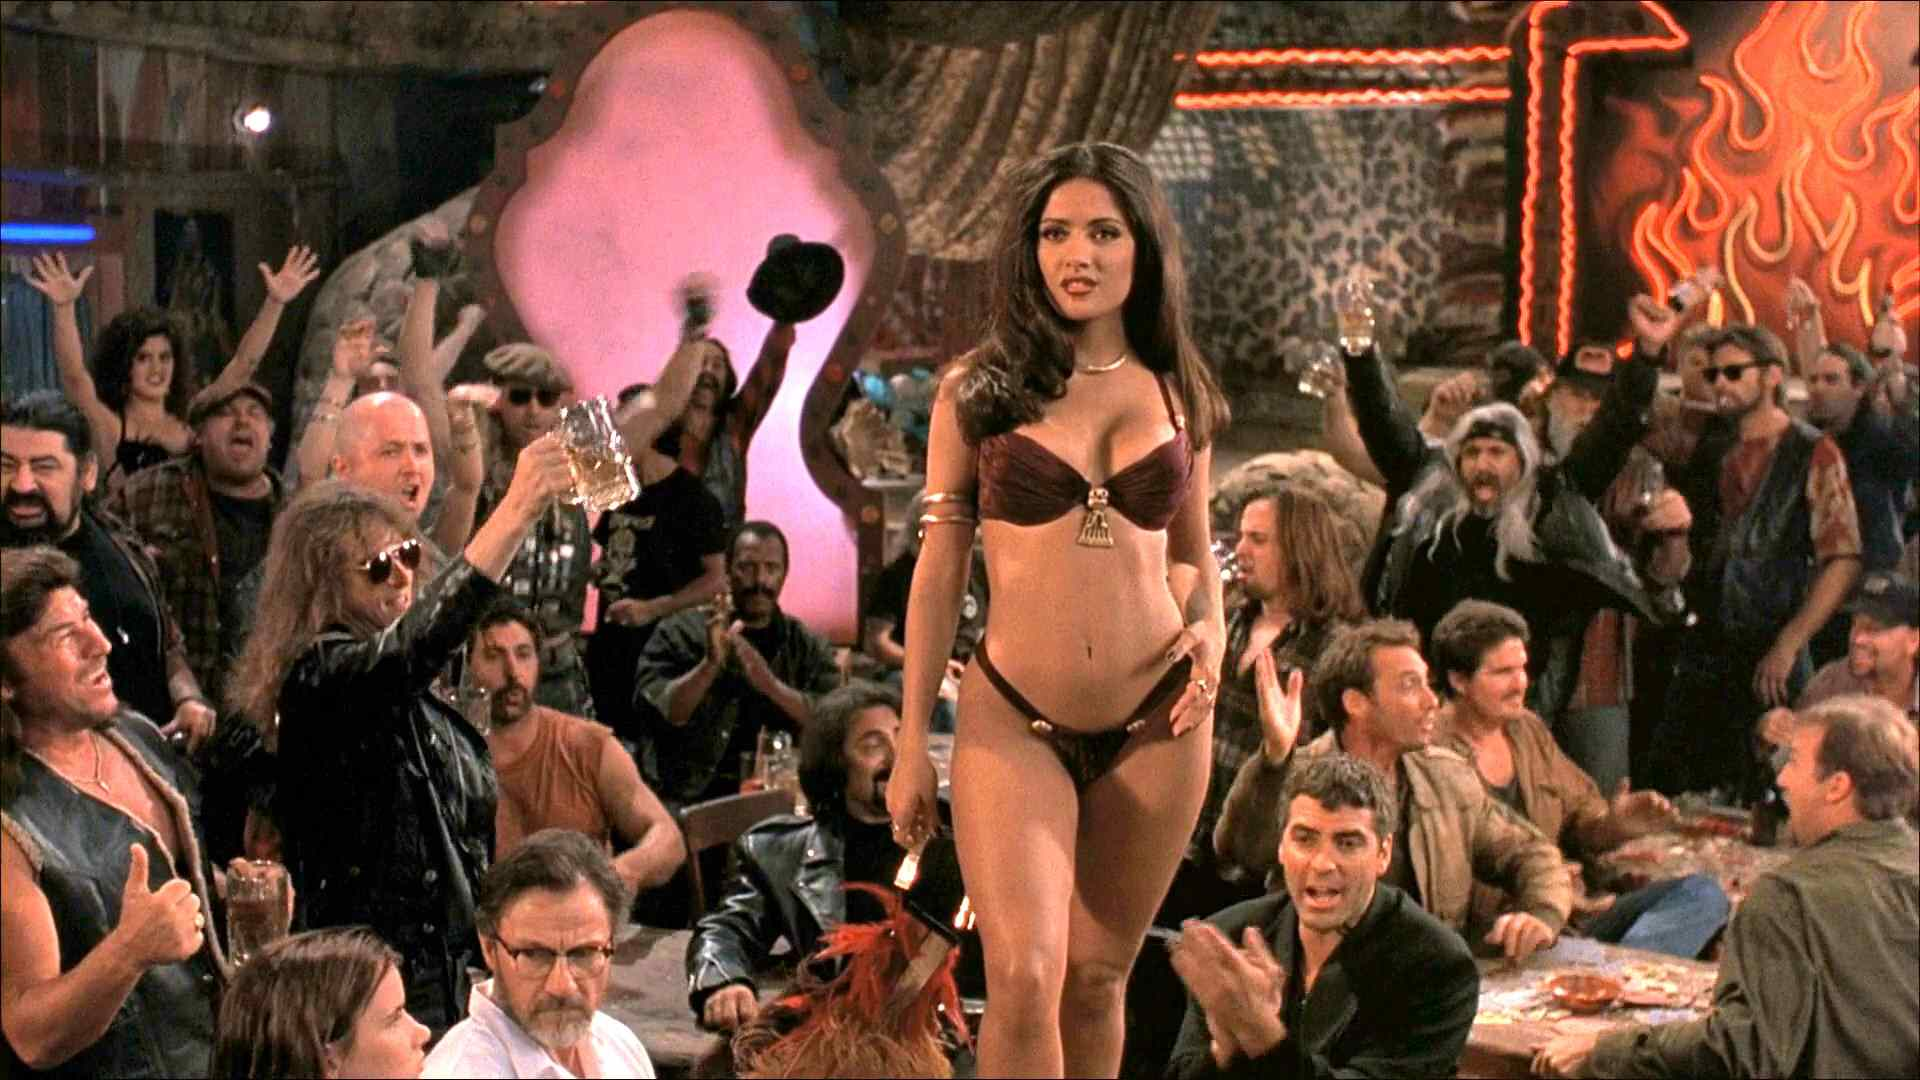 Sexy Salma Hayek in the hit movie From Dusk till Dawn written by Quentin Taratino and starring George Clooney.